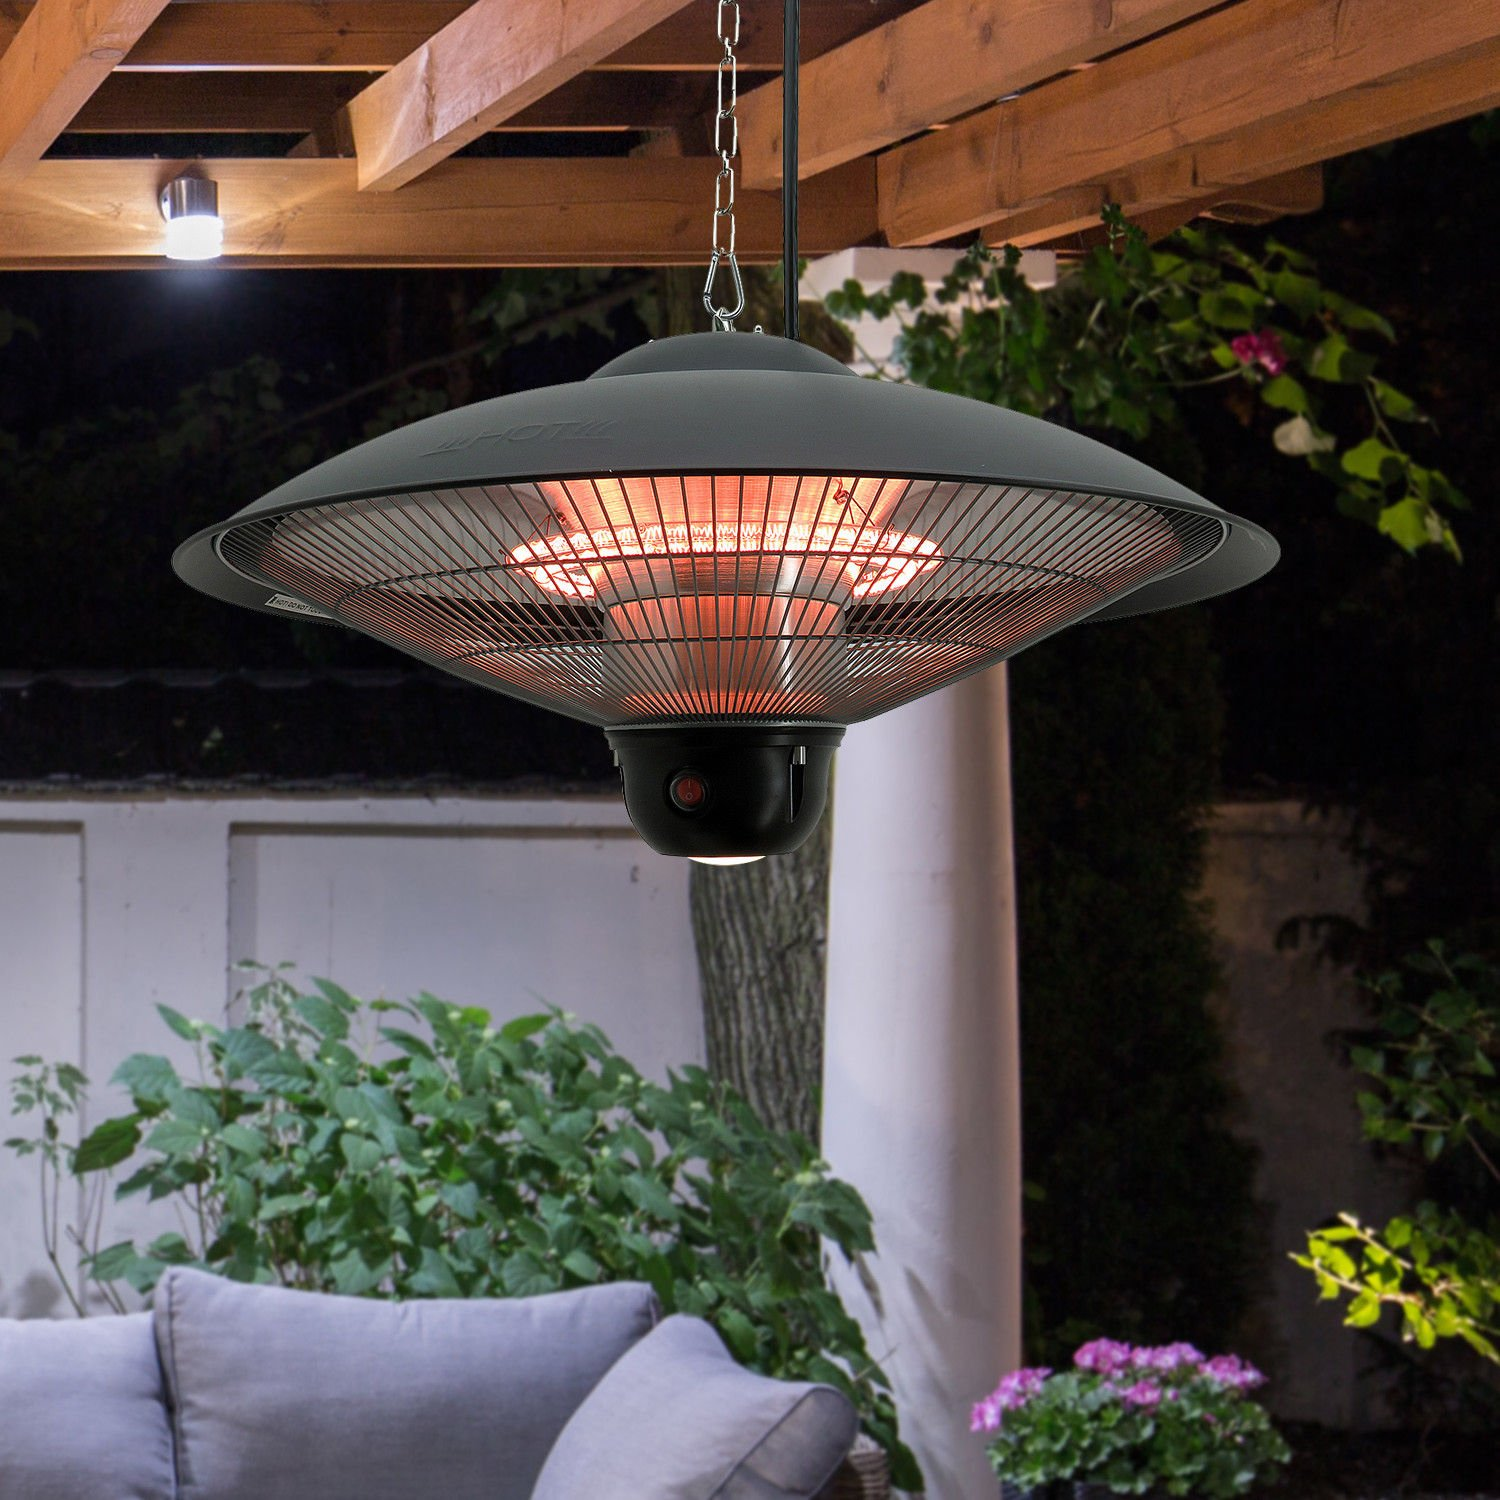 New MTN-G Hanging Ceiling Electric Halogen Patio Heater Outdoor Indoor Remote Control LED by MTN Gearsmith